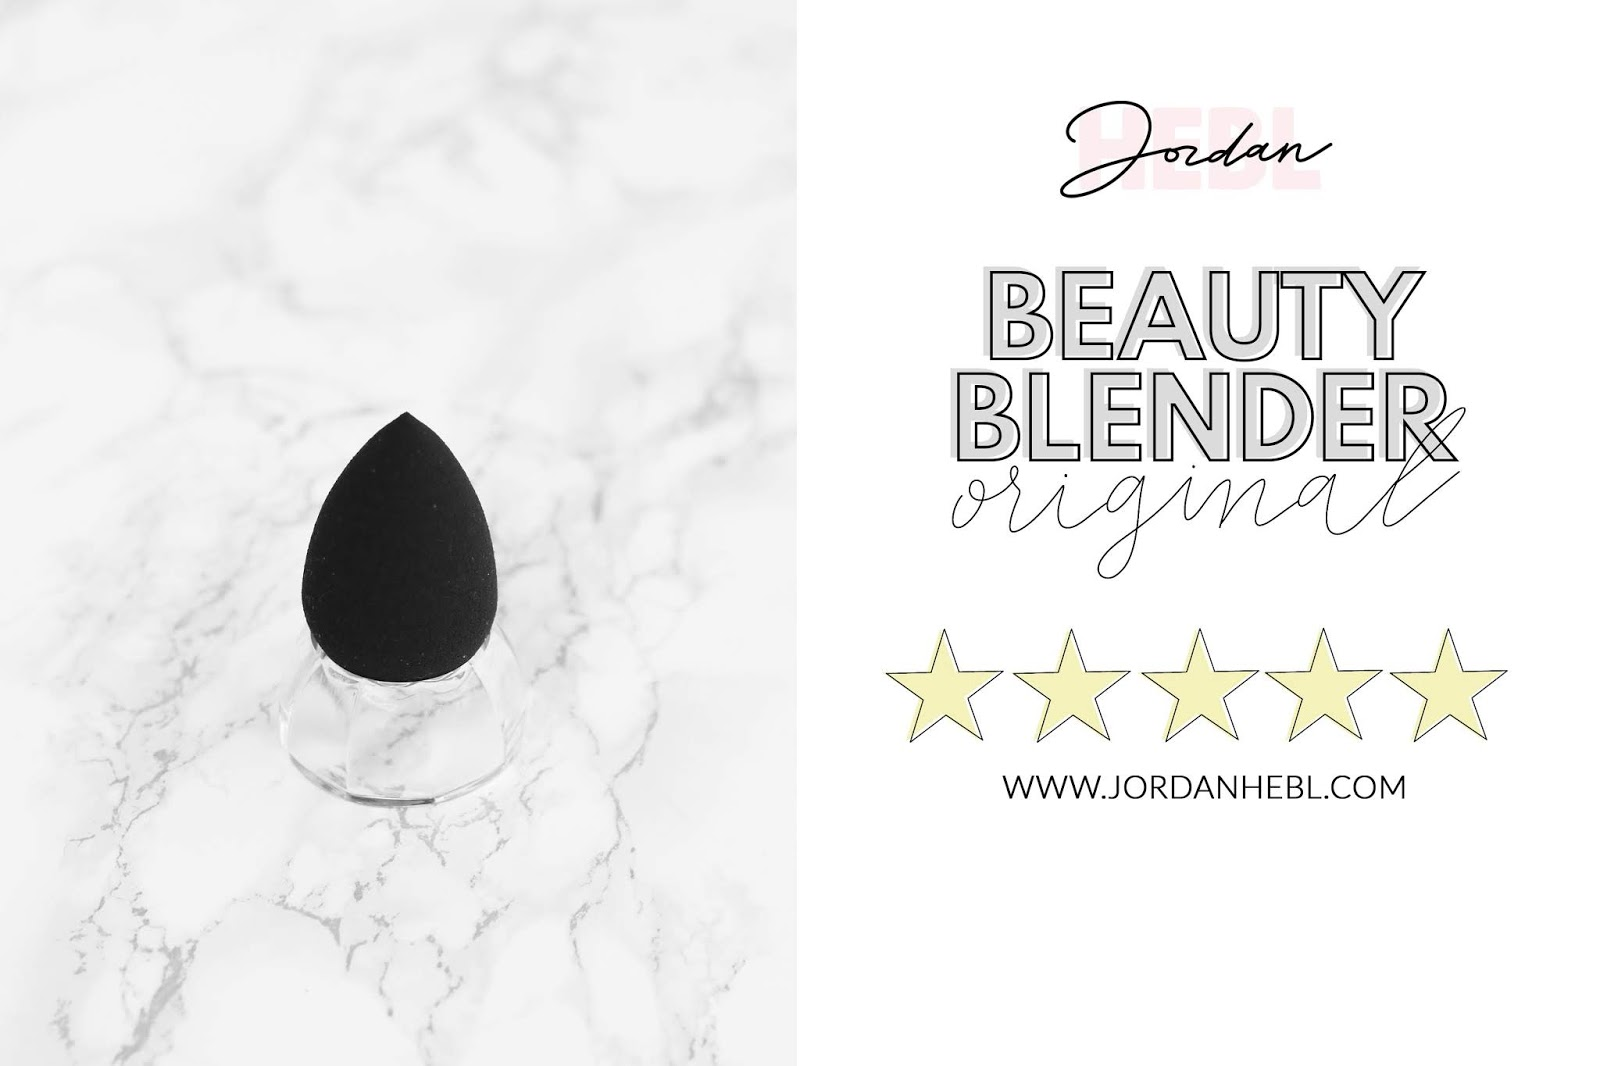 original beautyblender sponge, comparing makeup sponges, black beautyblender with marble background, beauty comparisons, beauty blogger